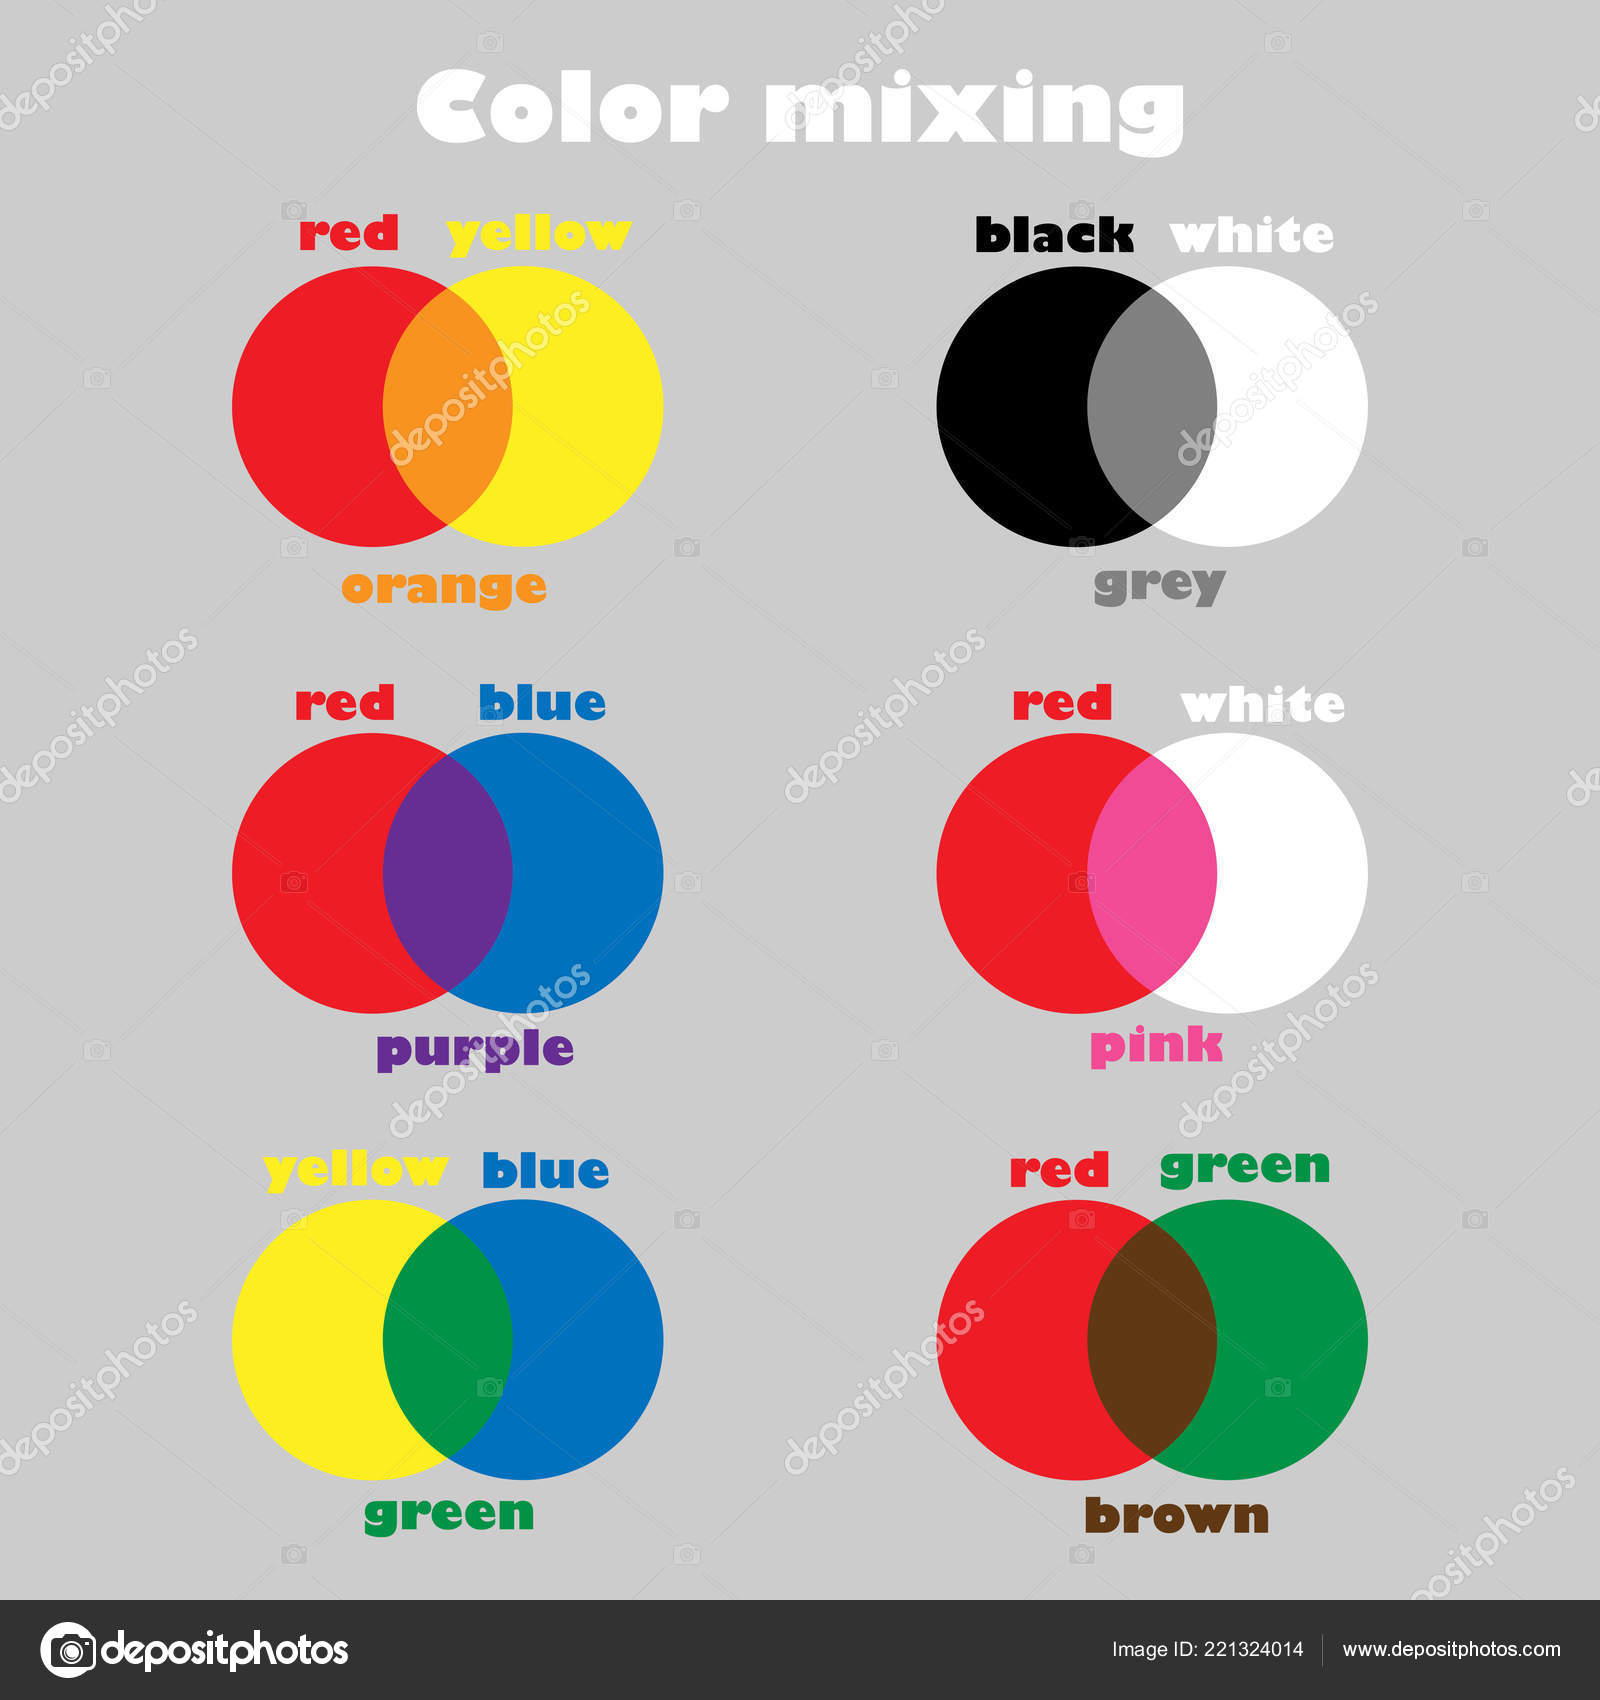 Learning Colors Mixing Children Fun Education Game Kids